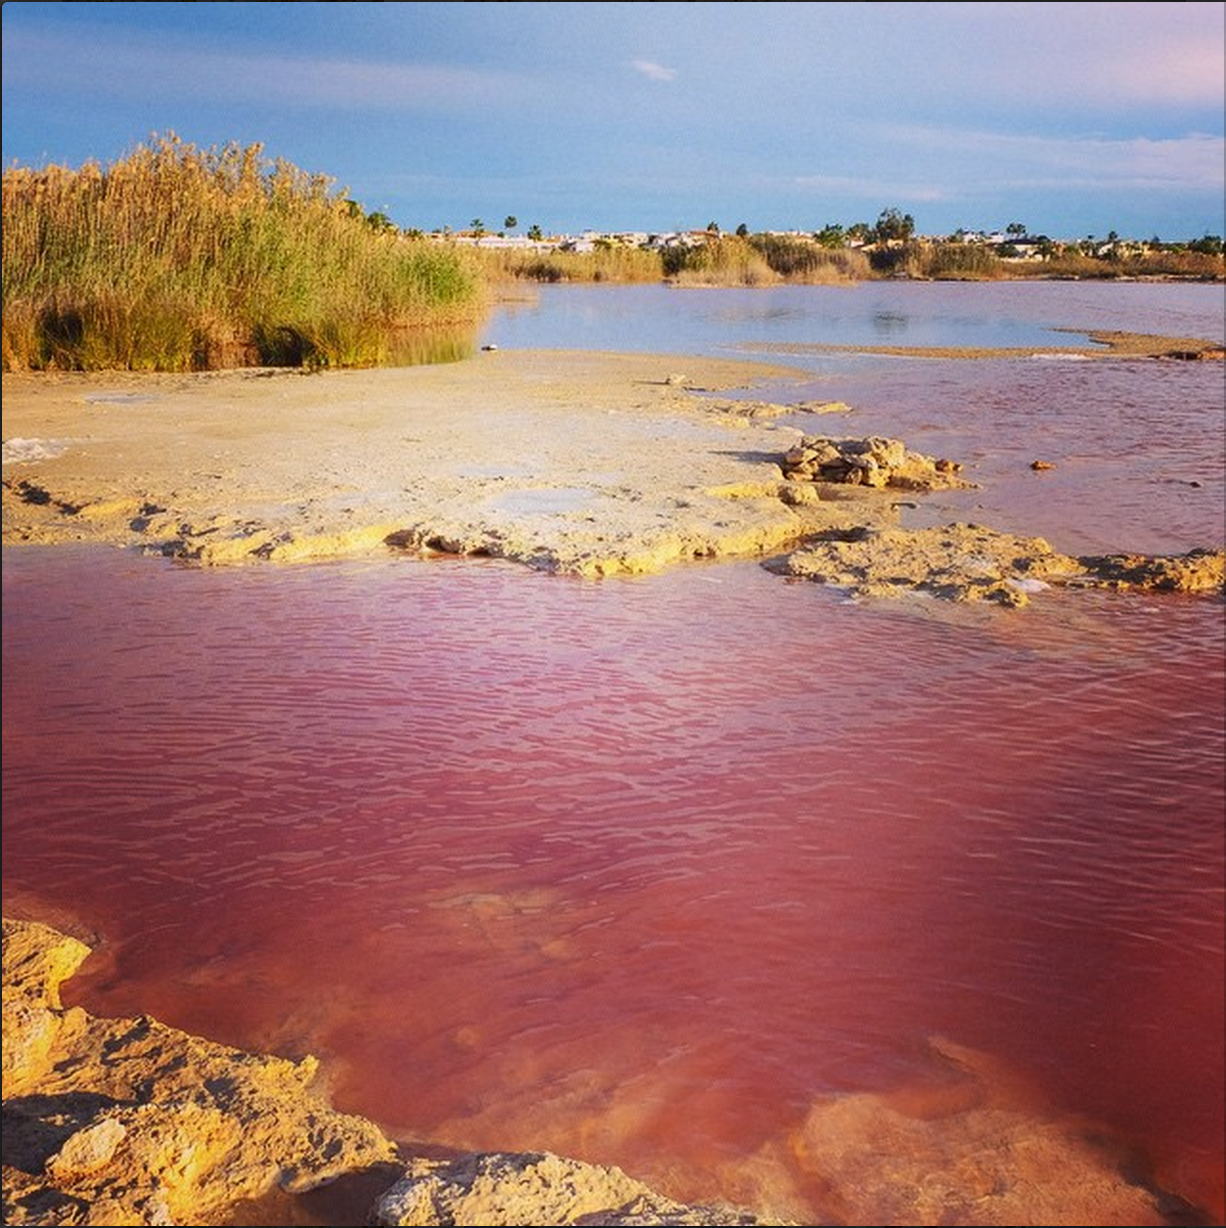 Pink salt lake in Torrevieja, Spain. Learn More @ http://www.spain-holiday.com/Alicante-province/articles/alicantes-pink-and-green-salt-lakes